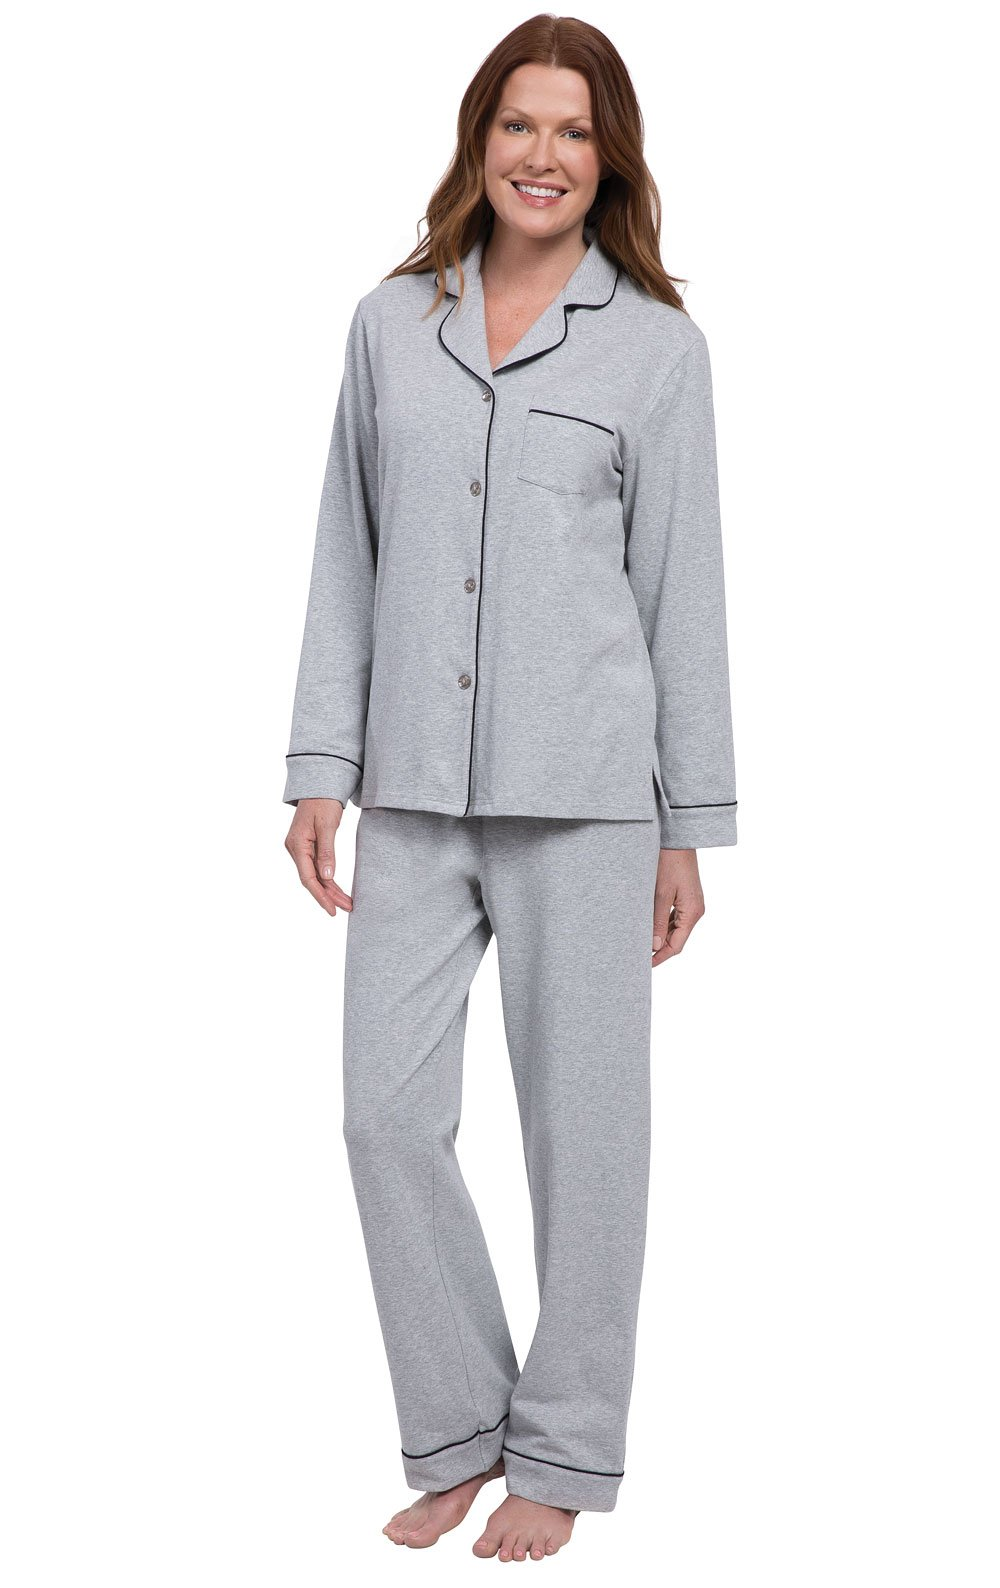 PajamaGram Womens PJs Cotton Jersey - Soft Pajamas for Women, Grey, L, 12-14